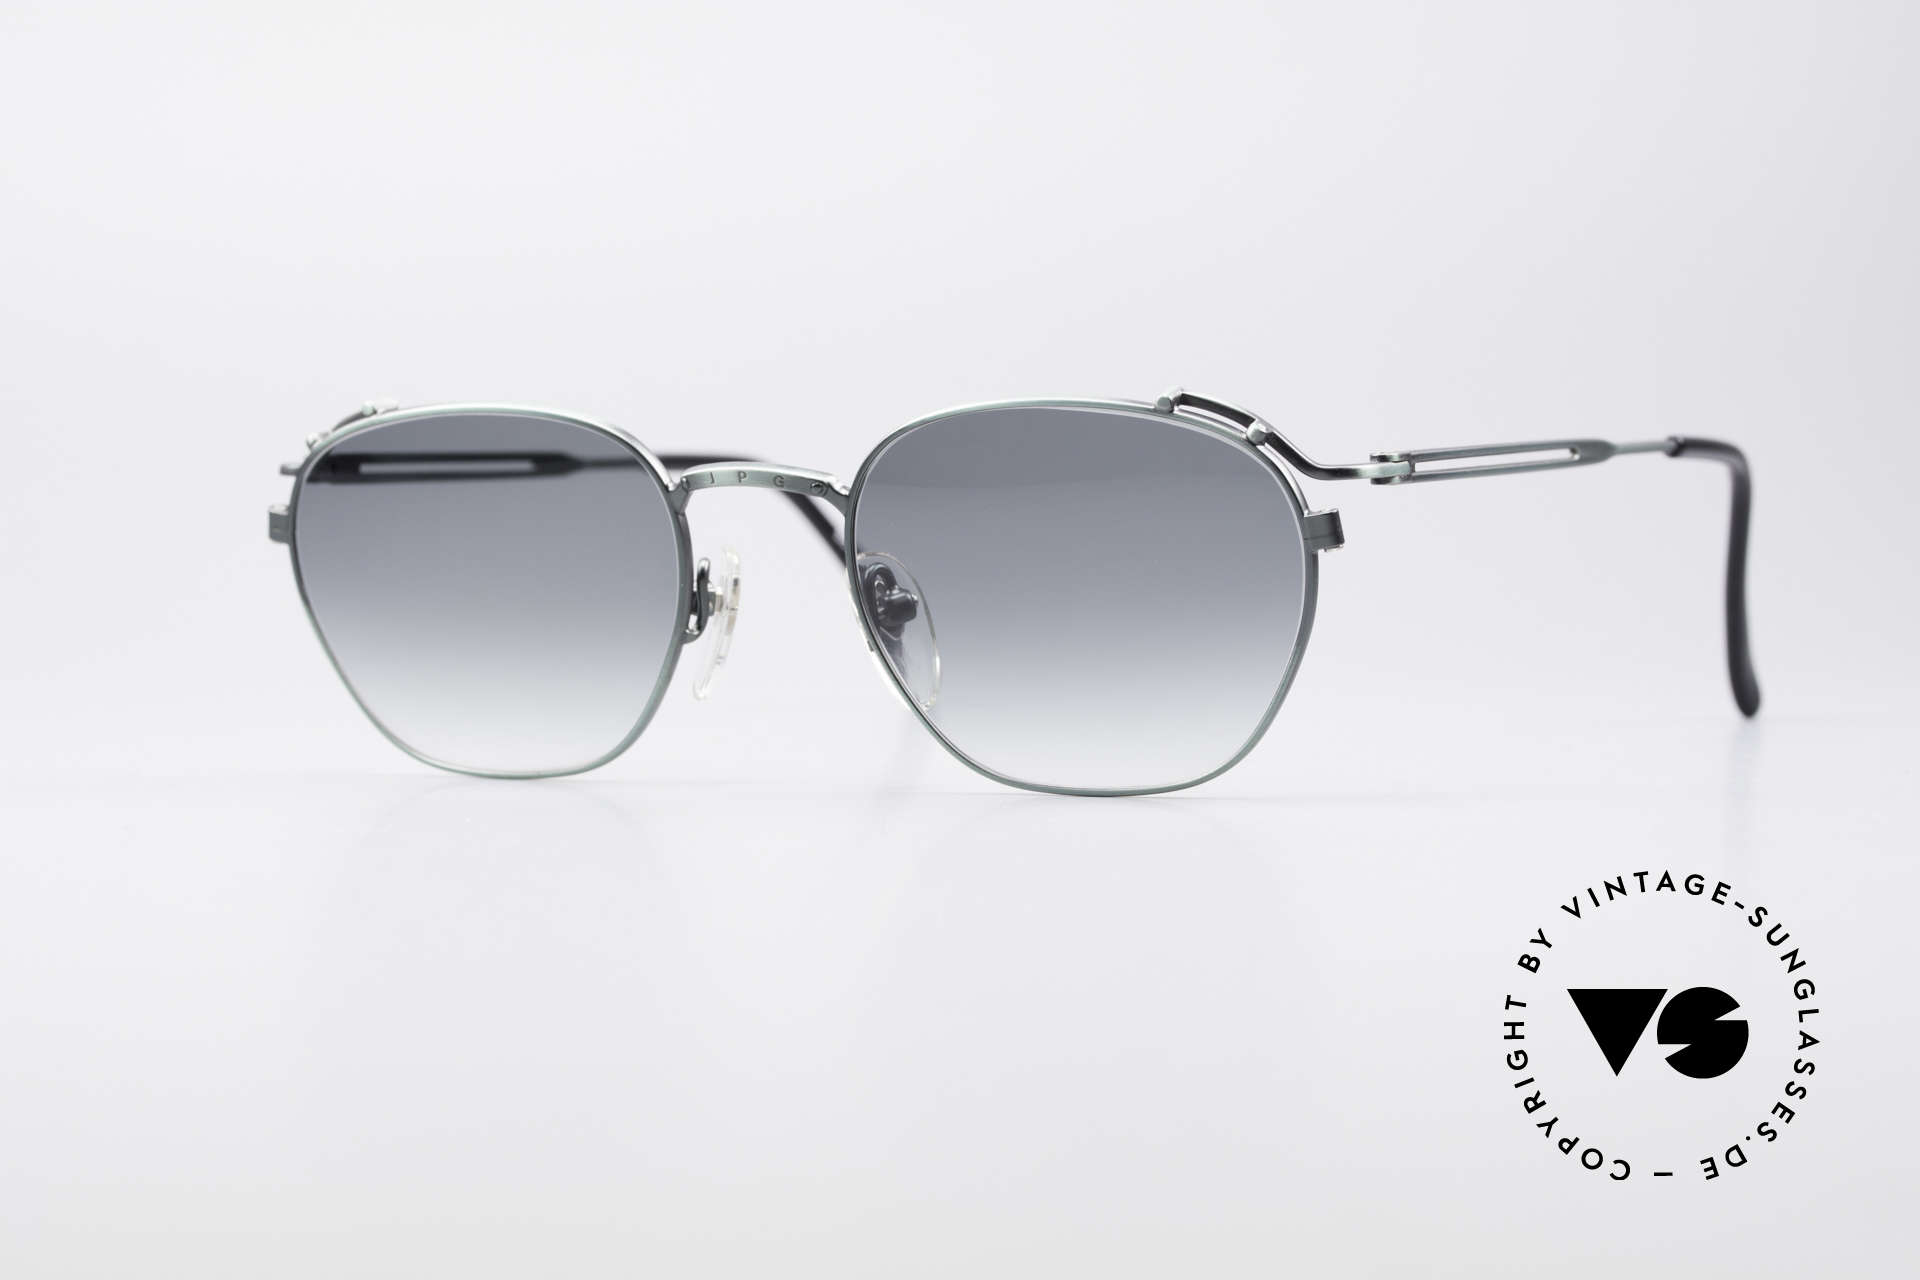 Jean Paul Gaultier 55-3173 90's Designer Sunglasses, timeless vintage shades by Jean Paul GAULTIER, Made for Men and Women